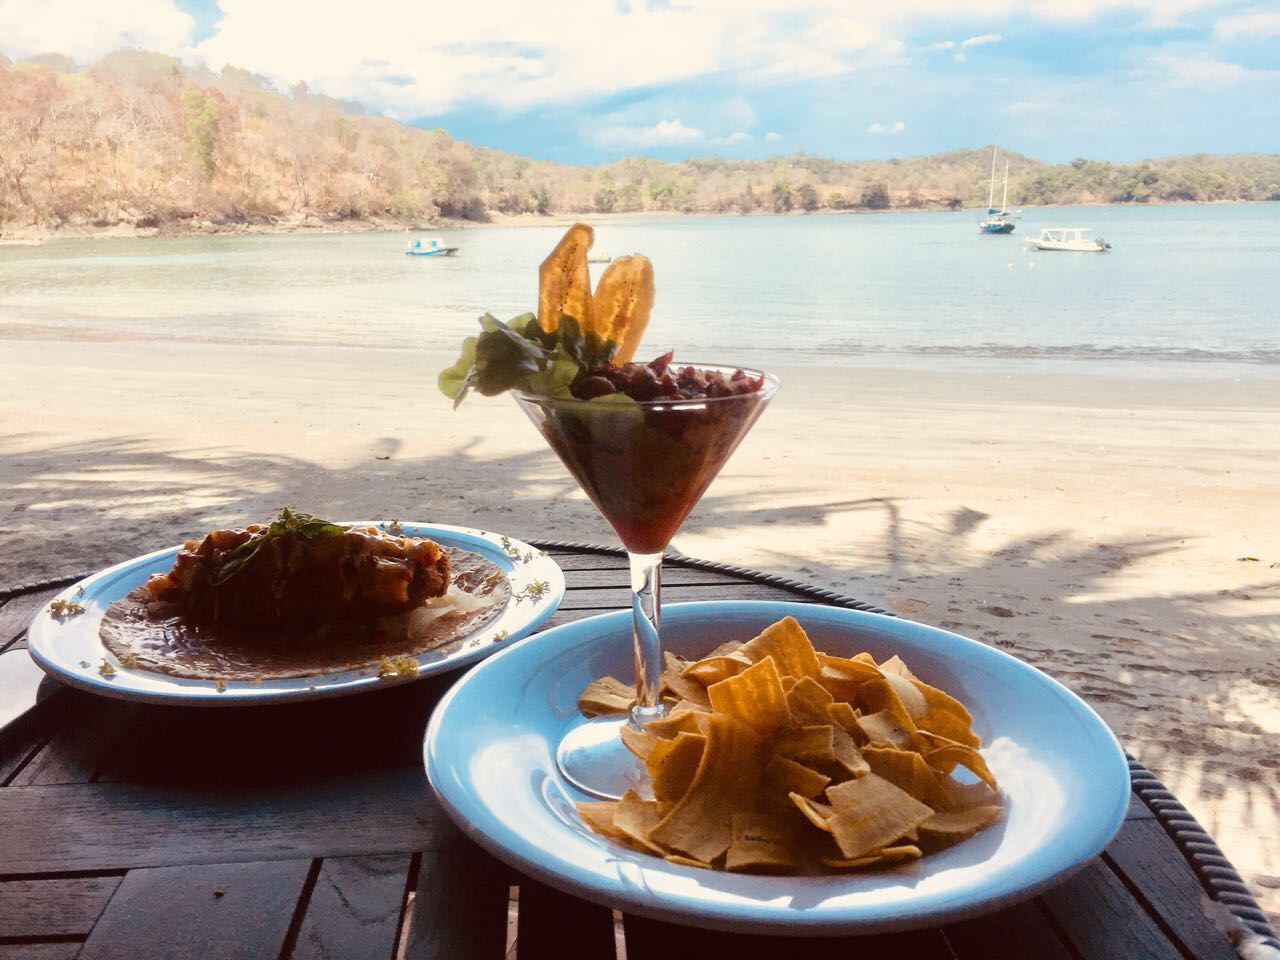 A Fusion of International and Traditional Panamanian Food